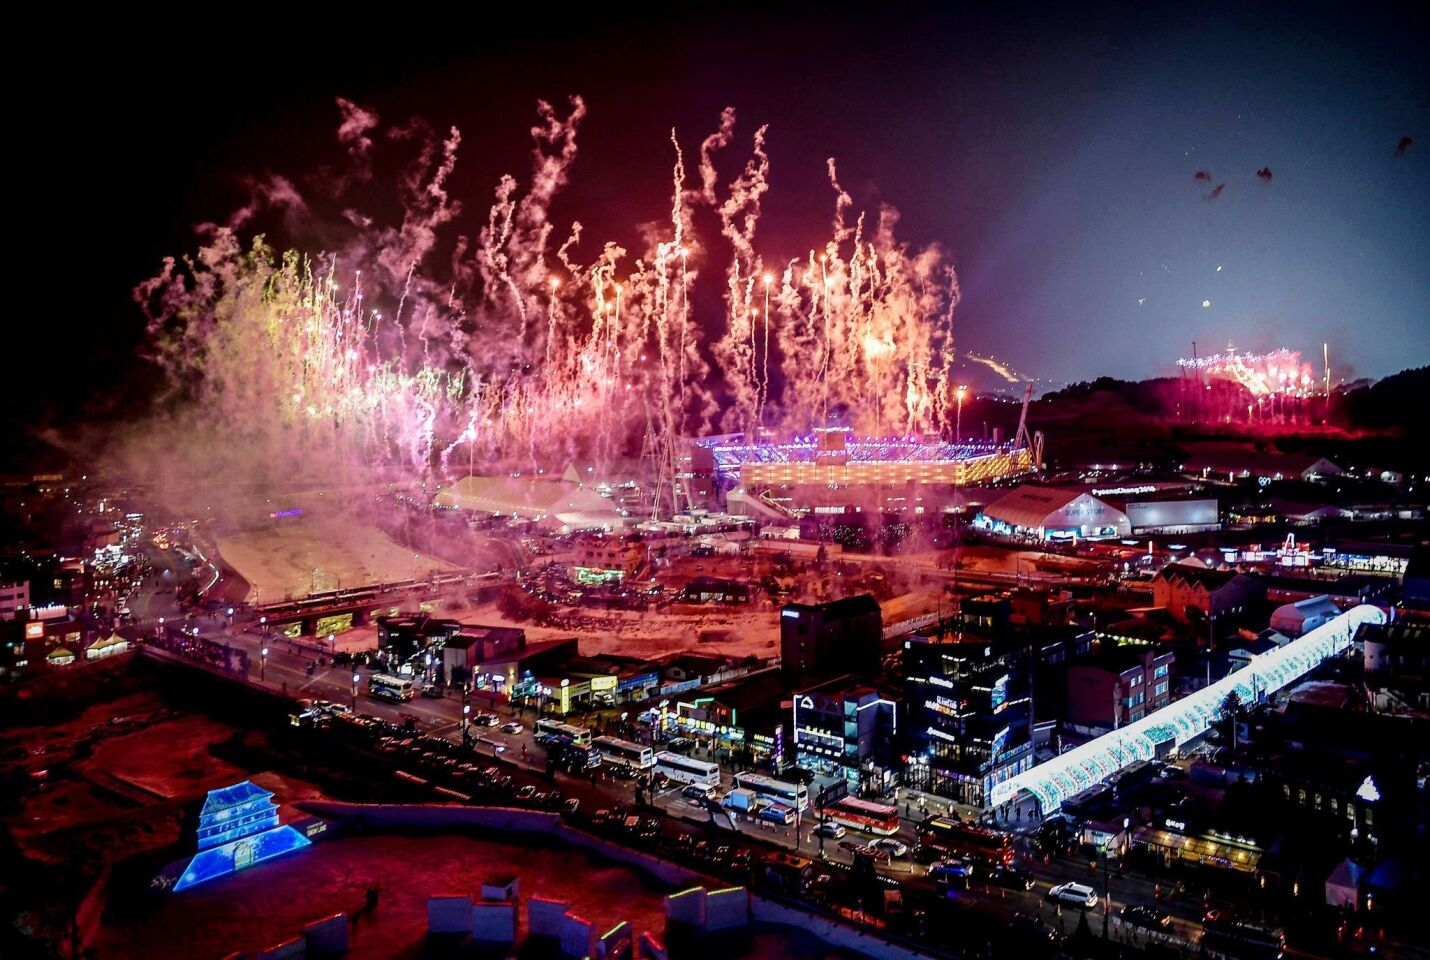 Fireworks go off at the start of the opening ceremony of the Pyeongchang 2018 Winter Olympic Games at the Pyeongchang Stadium.